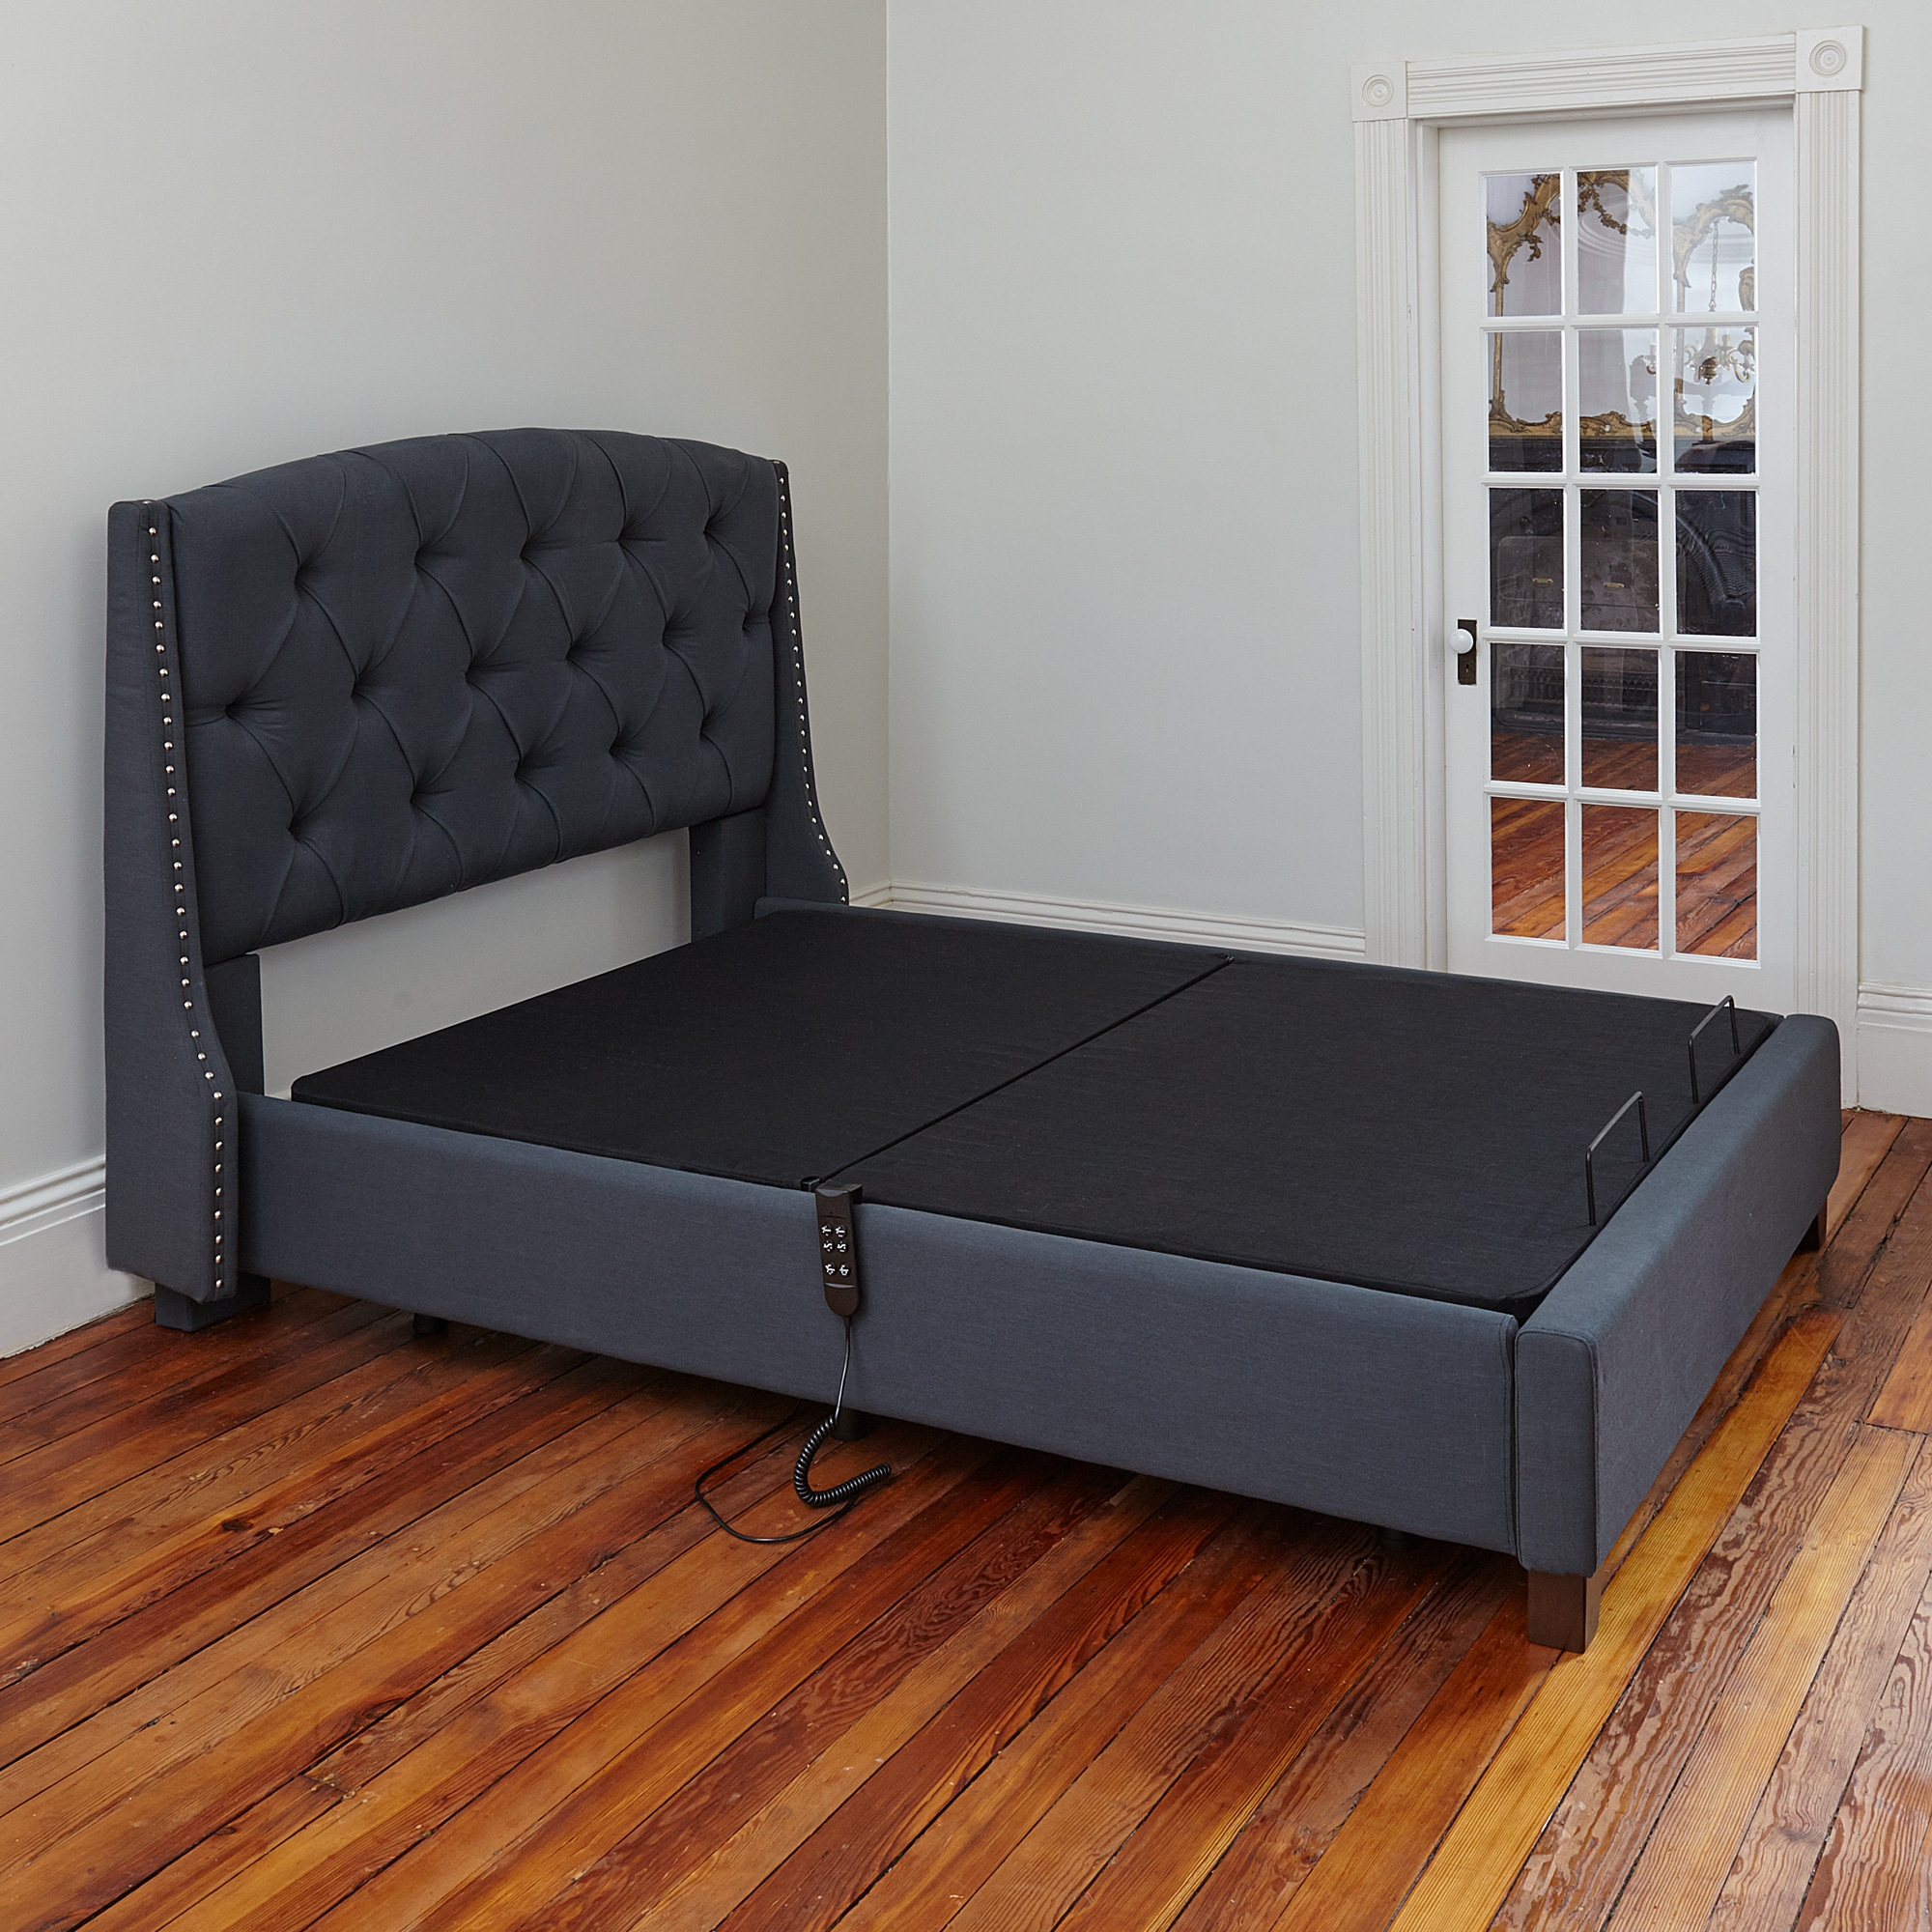 brookside overstock home shipping product today adjustable garden base bed classic free